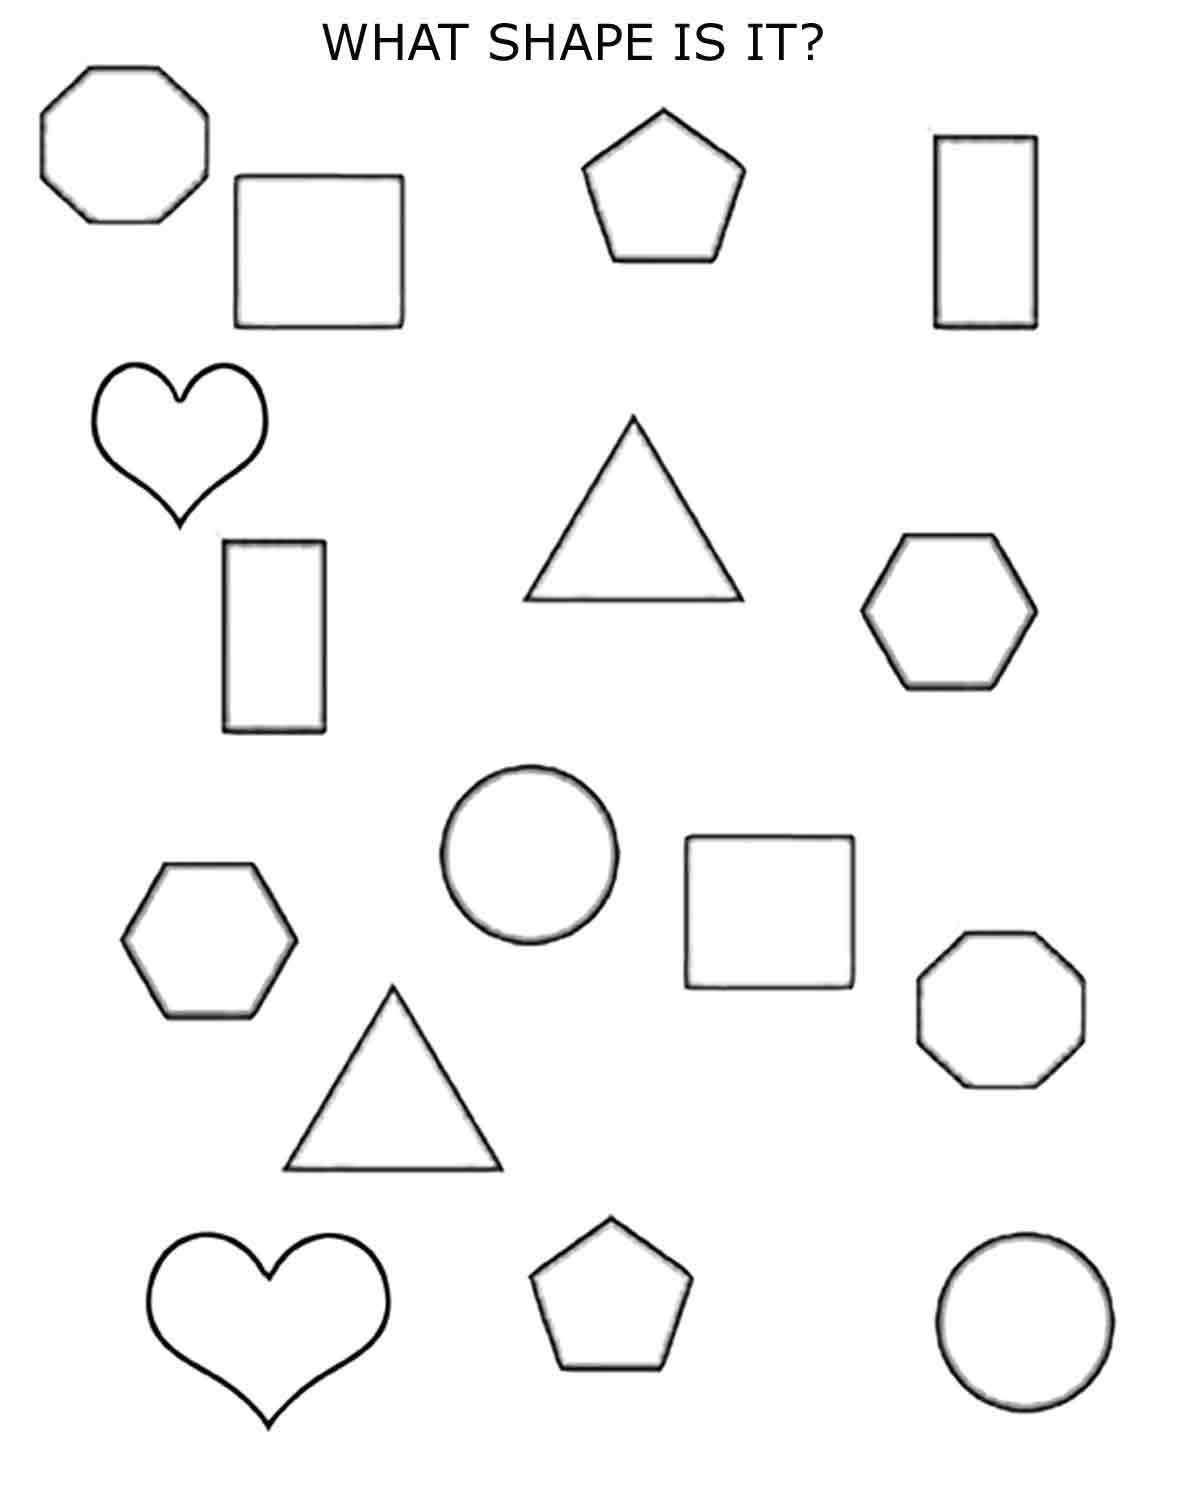 Polygon Worksheets for 2nd Grade 2d Shapes 1st 2nd Grade Planet12sun Printables